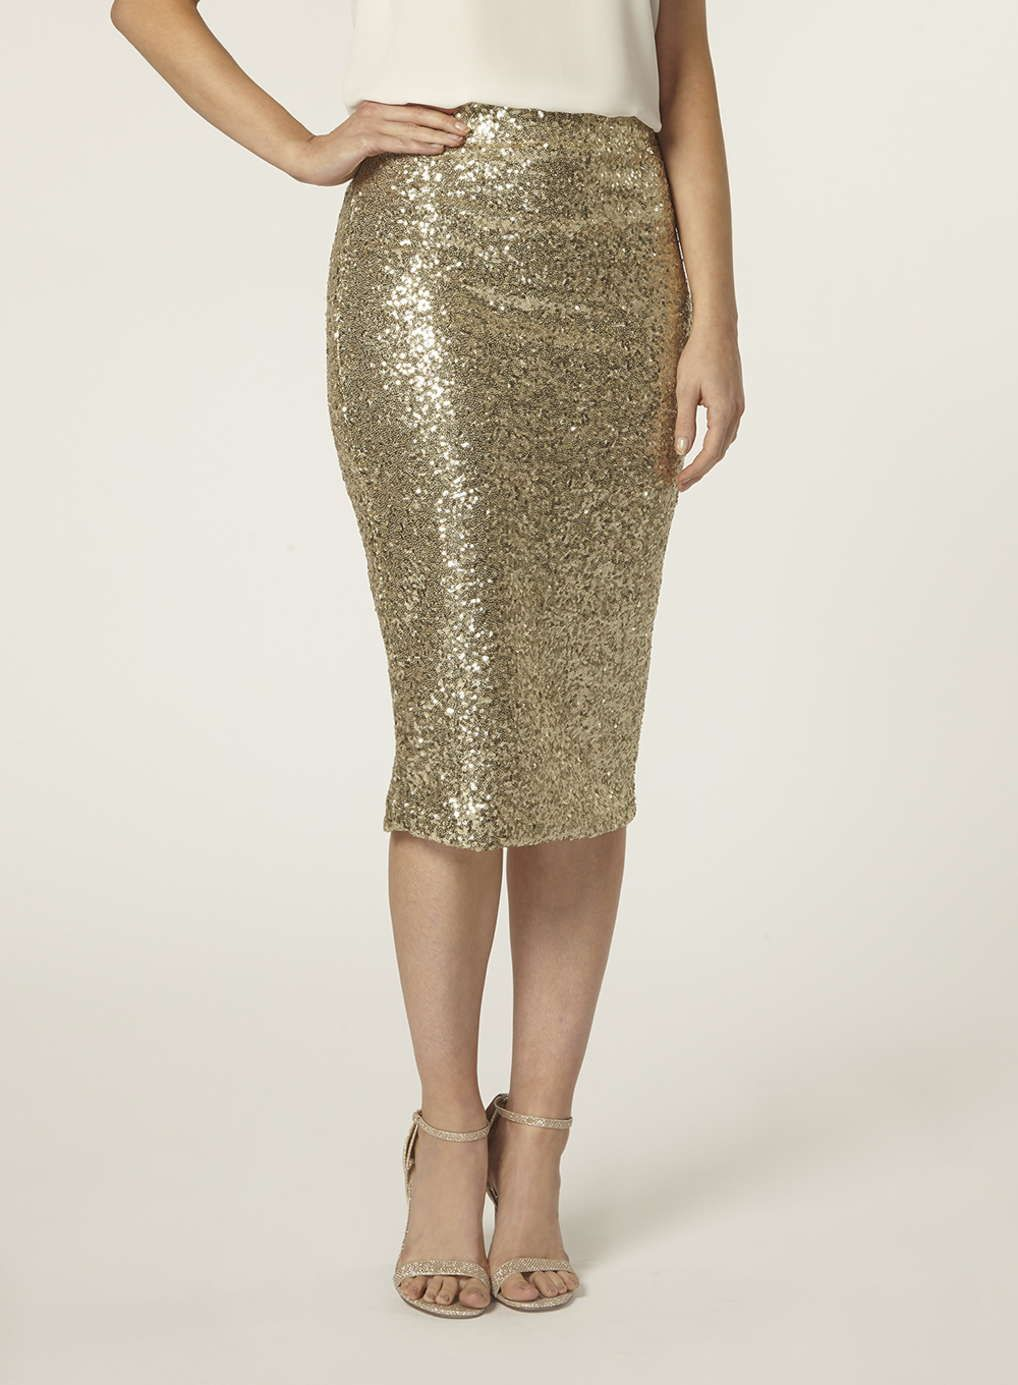 Gold Sequin Pencil Skirt - View All New In - New In | Gold sequins ...